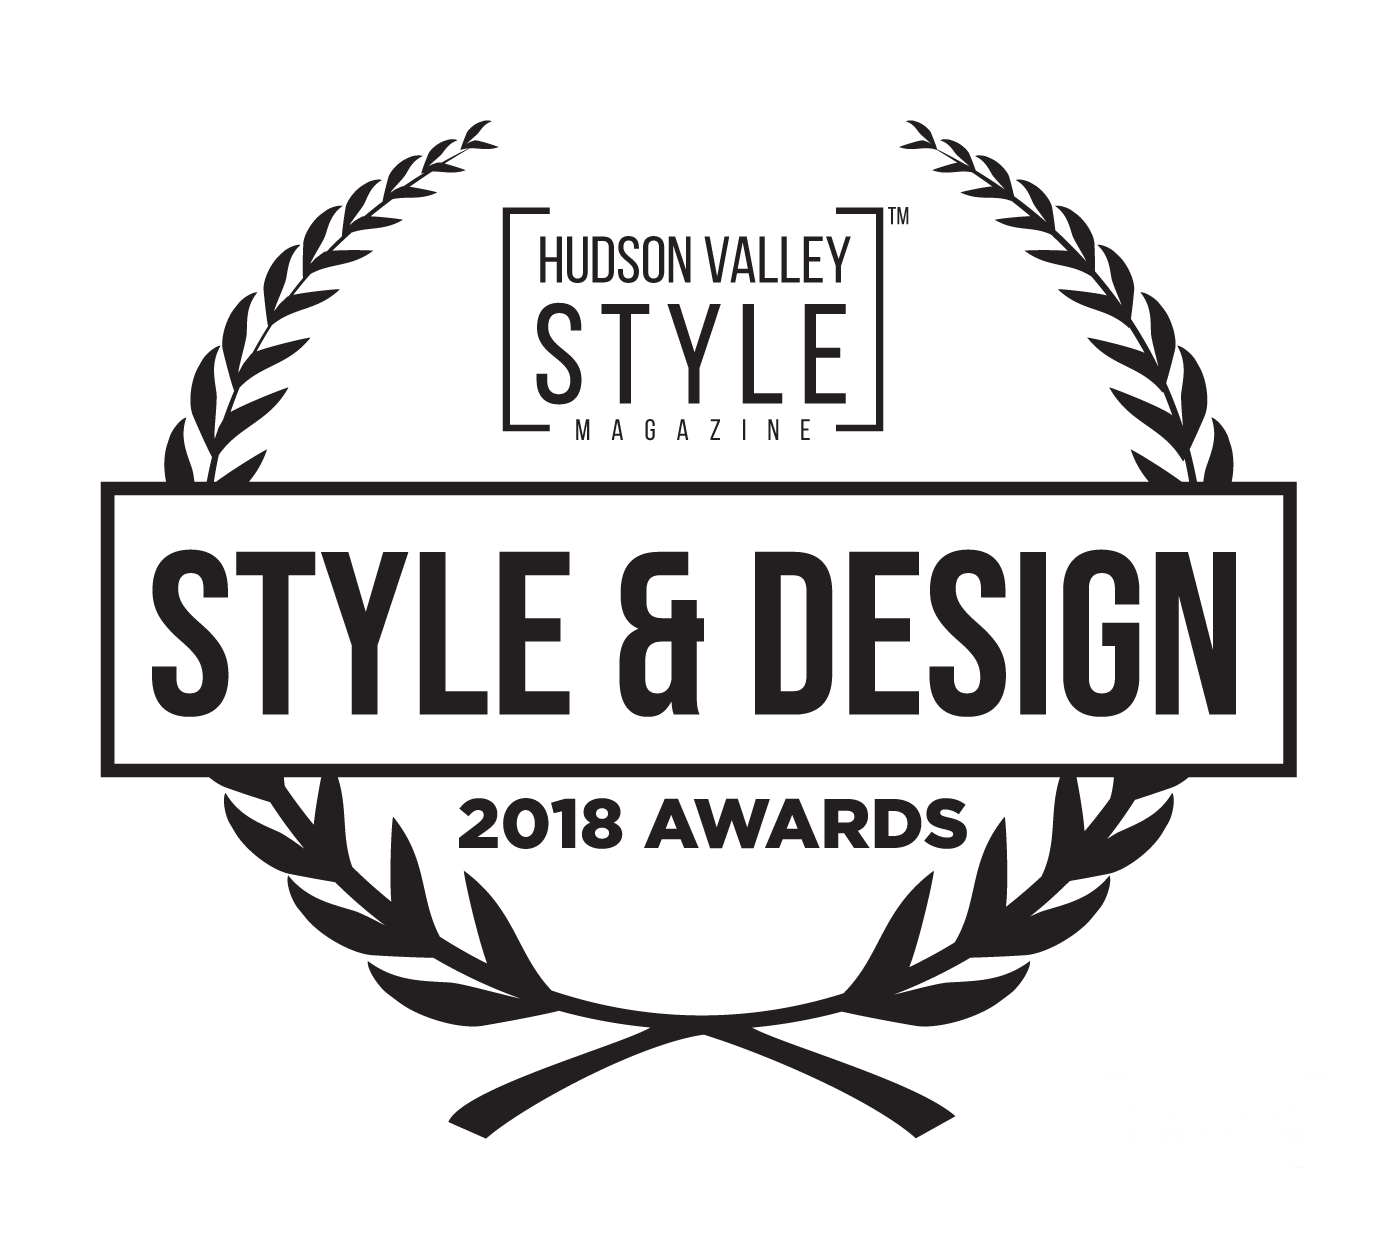 Hudson Valley Style Magazine Awards: Style and Design